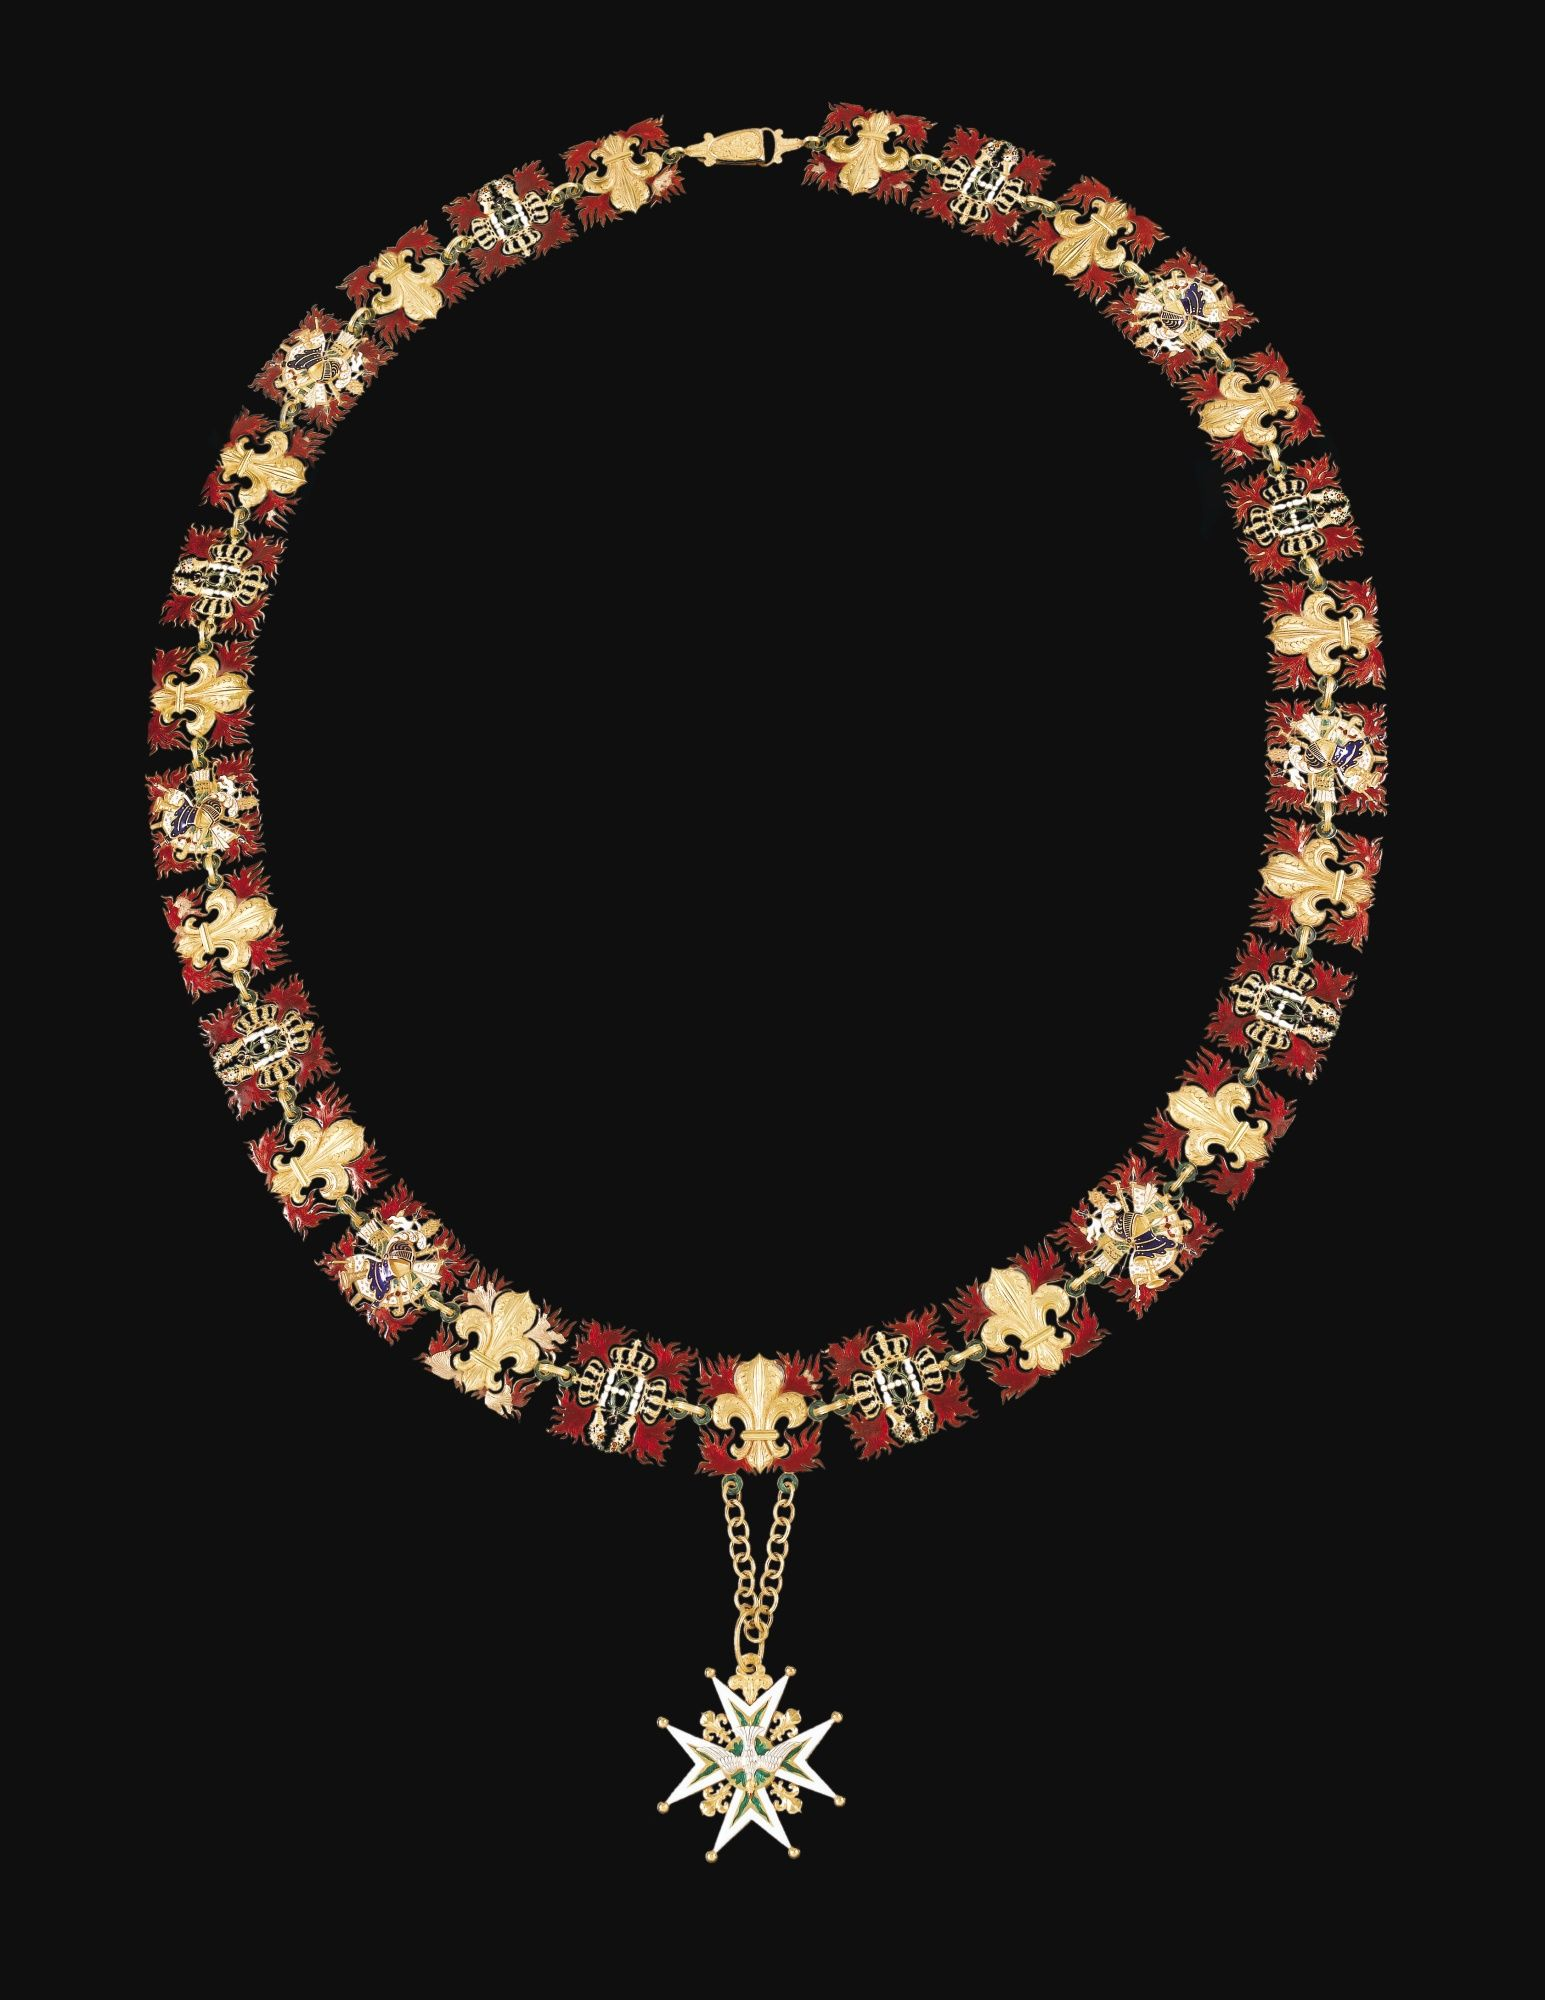 Order of the Holy Spirit - Collar belonged to Louis-Philippe d'Orléans, later King Louis-Philippe I of the French